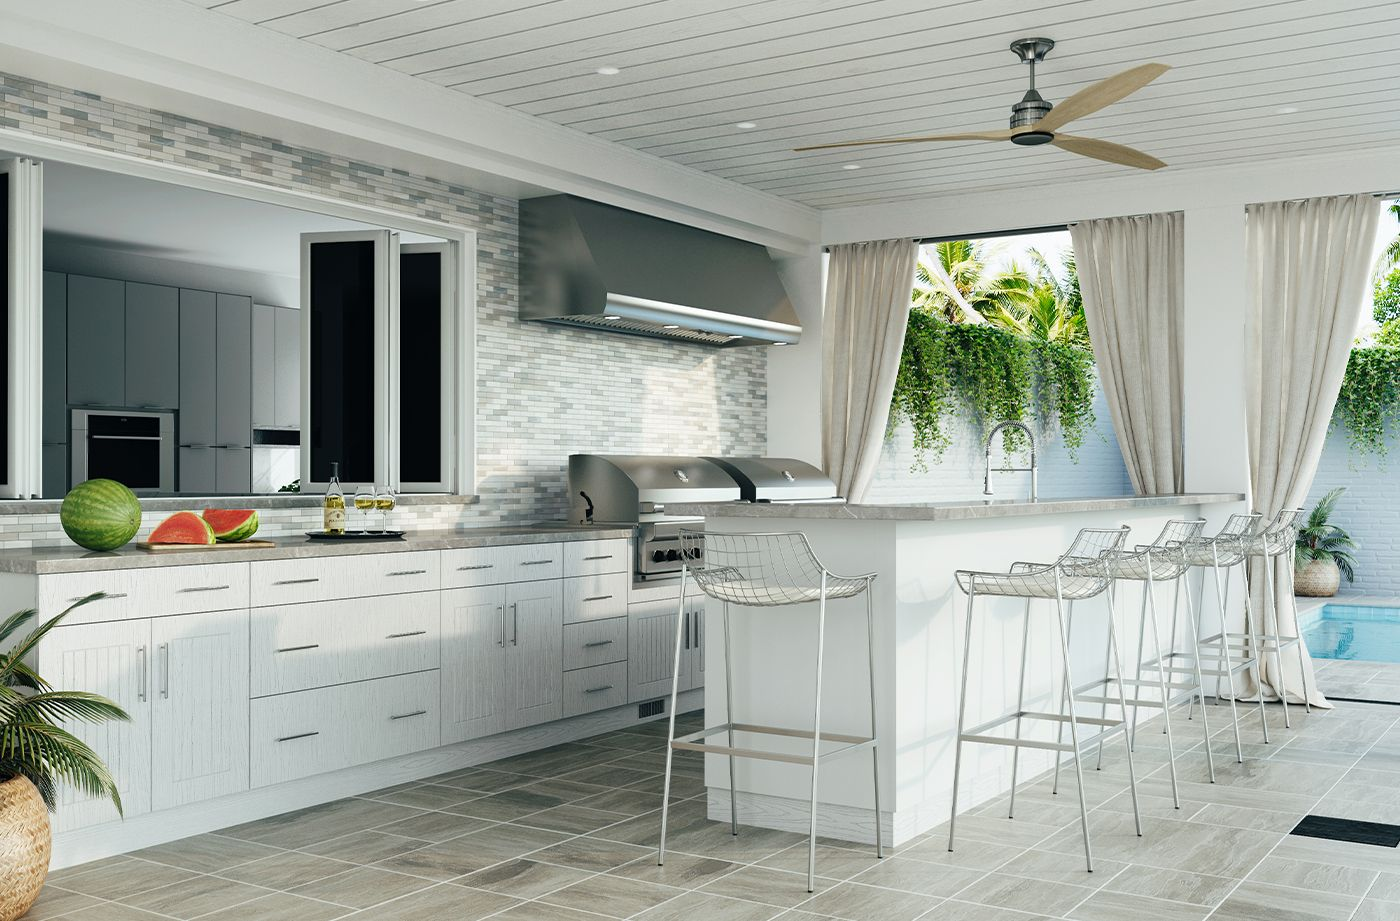 Costco Weatherstrong Outdoor Cabinetry In 2020 Outdoor Kitchen Home Decor